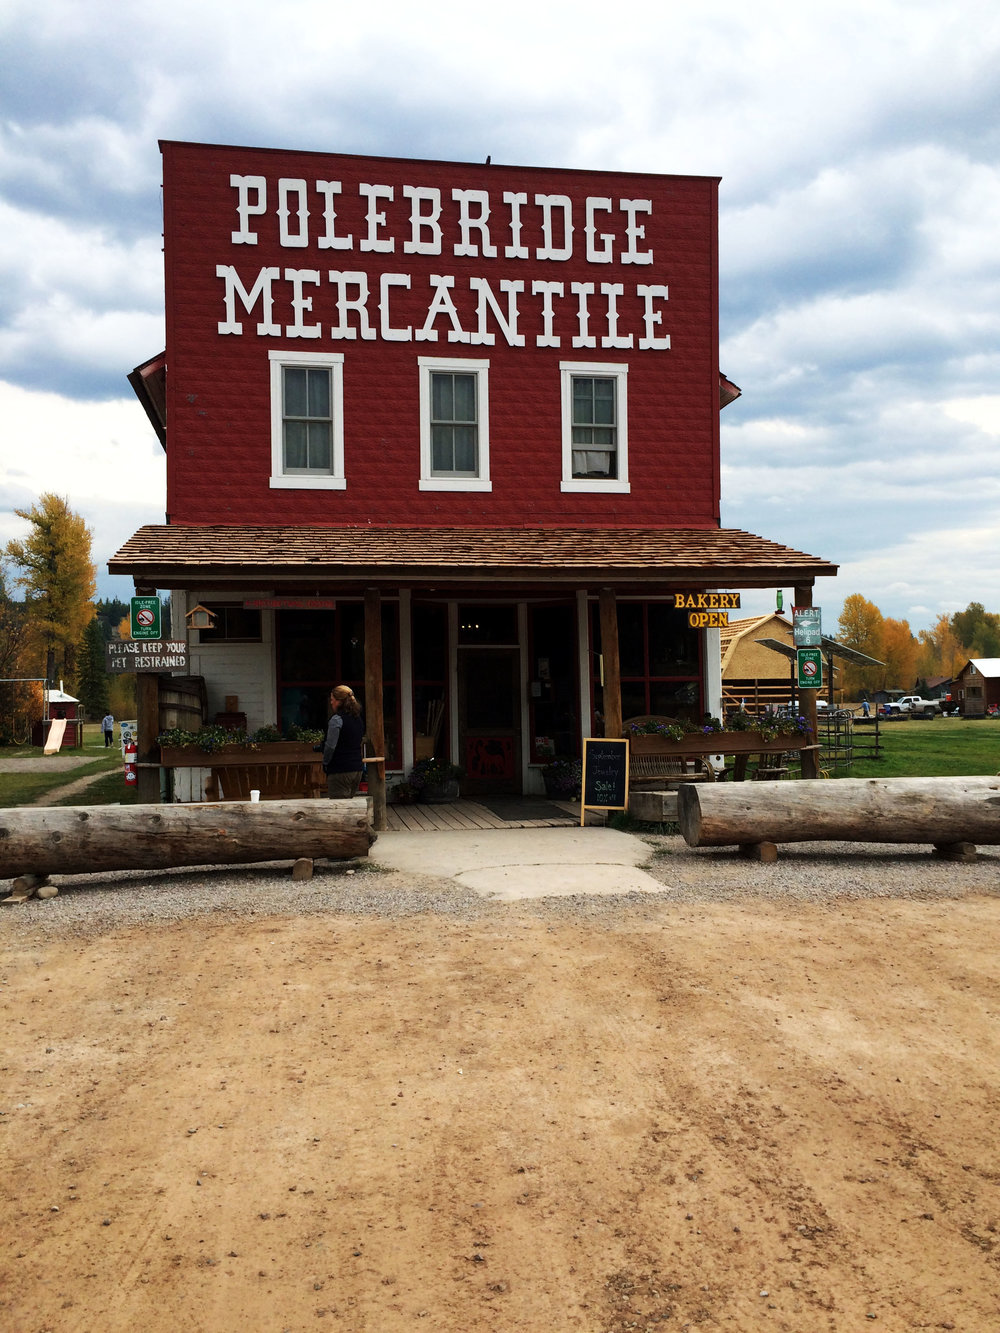 """Polebridge, Montana: Population 3. Just kidding, but seriously a remote little town in the Northfork of Glacier National Park. This quaint red building above is the only Mercantile store (locally called """"the merc"""") in the area. Ate a little slice of heaven aka huckleberry pie and traveled the unforgiving, but absolutely gorgeous dirt road to the crisp Kitla Lake where we sipped cabernet by the fire."""